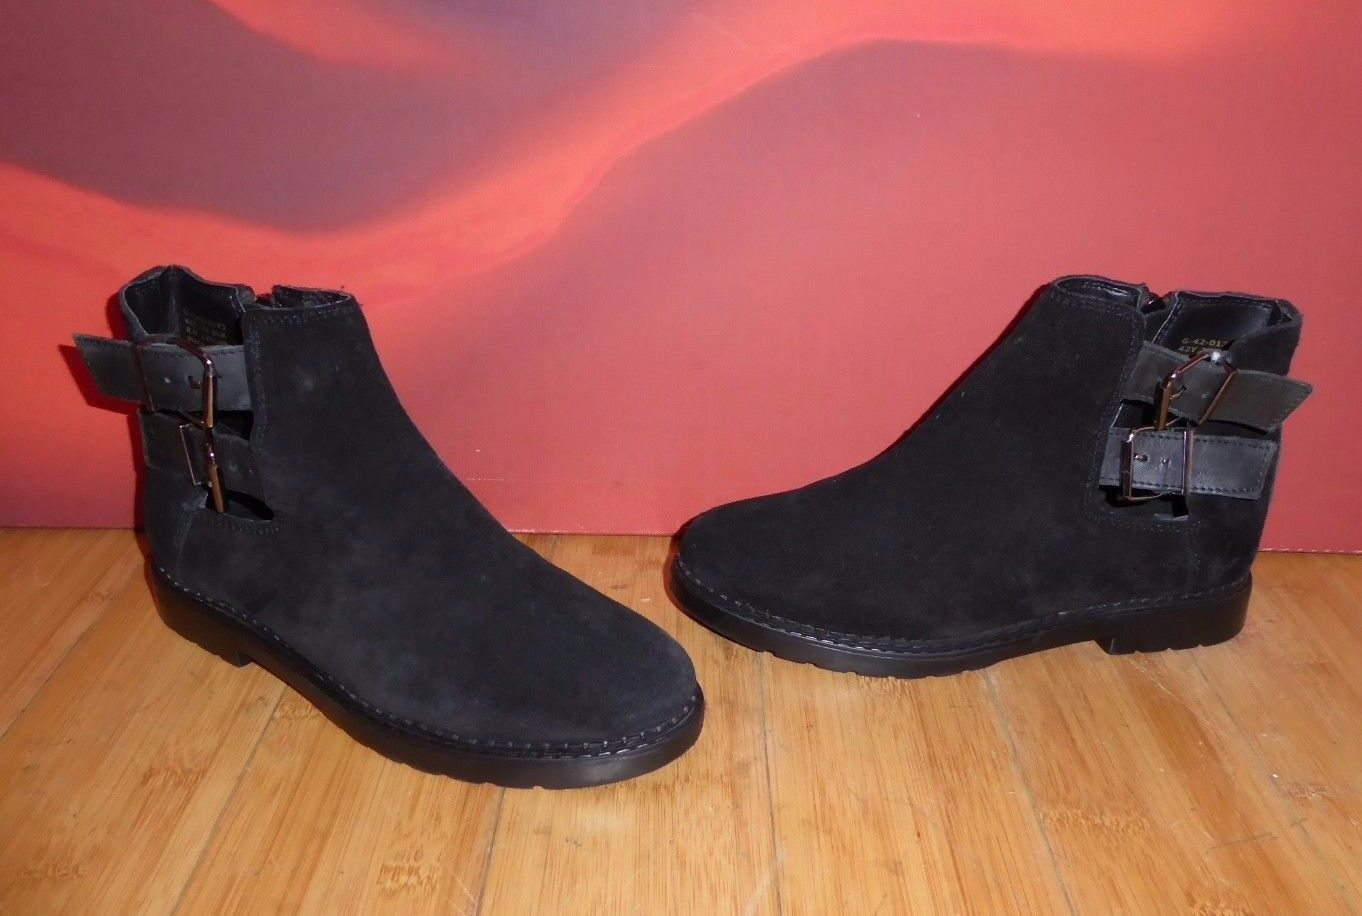 2 TOPSHOP BLACK LEATHER SUEDE  ANKLE  BOOTS EU 38 UK 5 INDIE GRUNGE